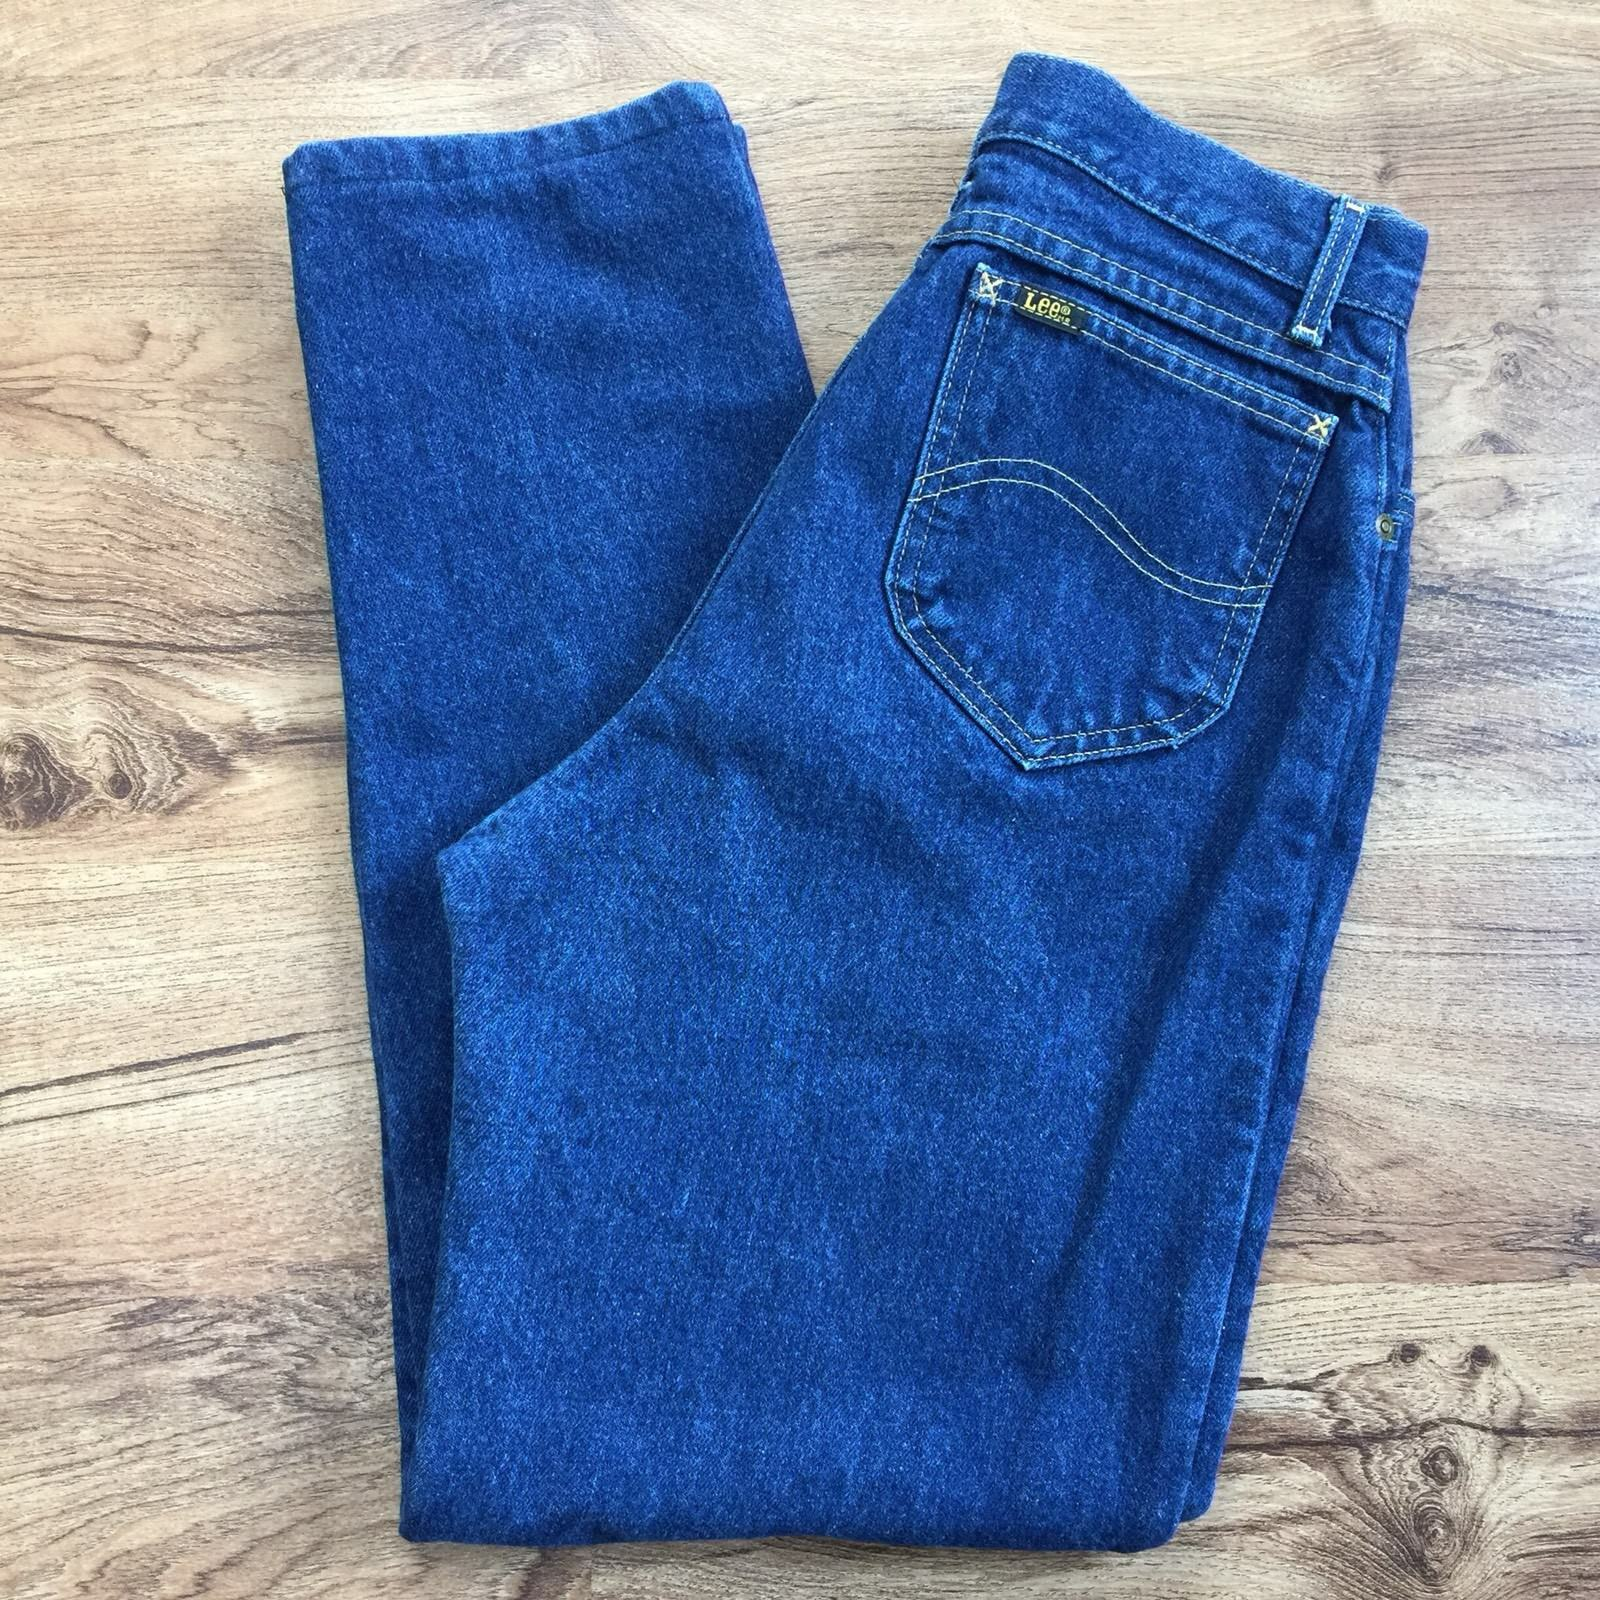 Vtg 90s Lee Riders Flannel Lined High Waist Jeans Made In USA Womens 10 Waist 27